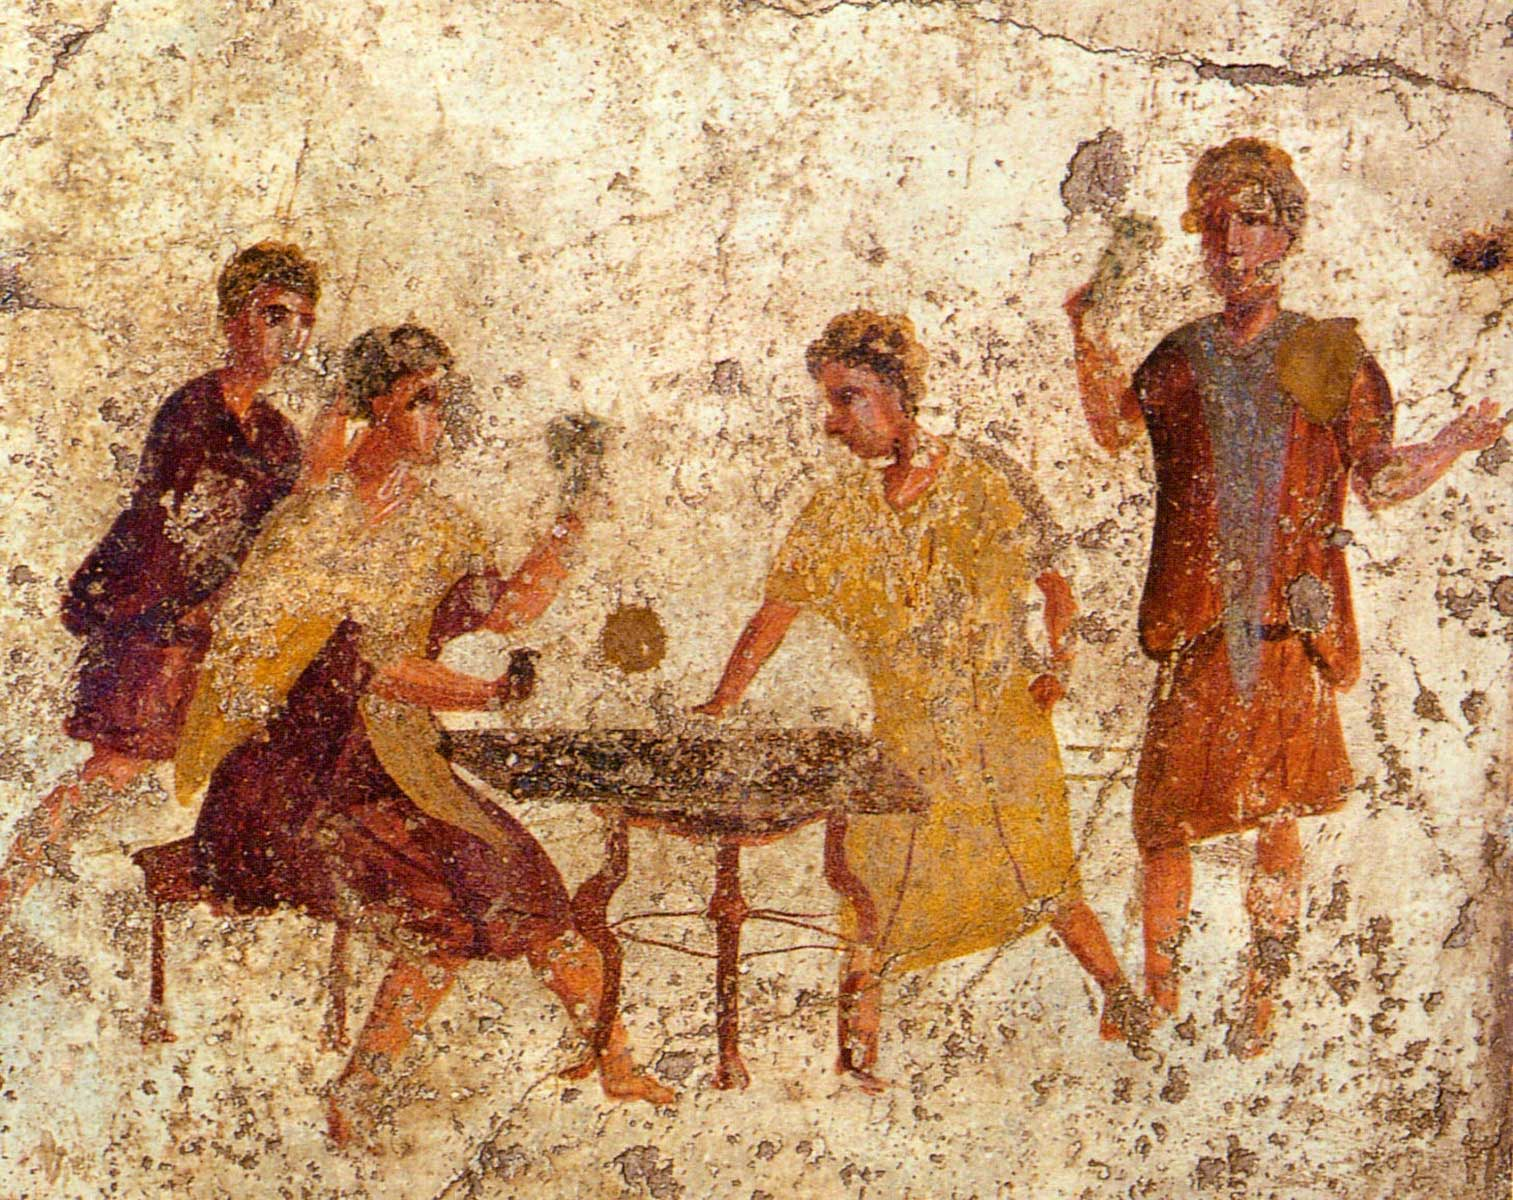 Dice players, Roman fresco from the Osteria della Via di Mercurio in Pompeii.